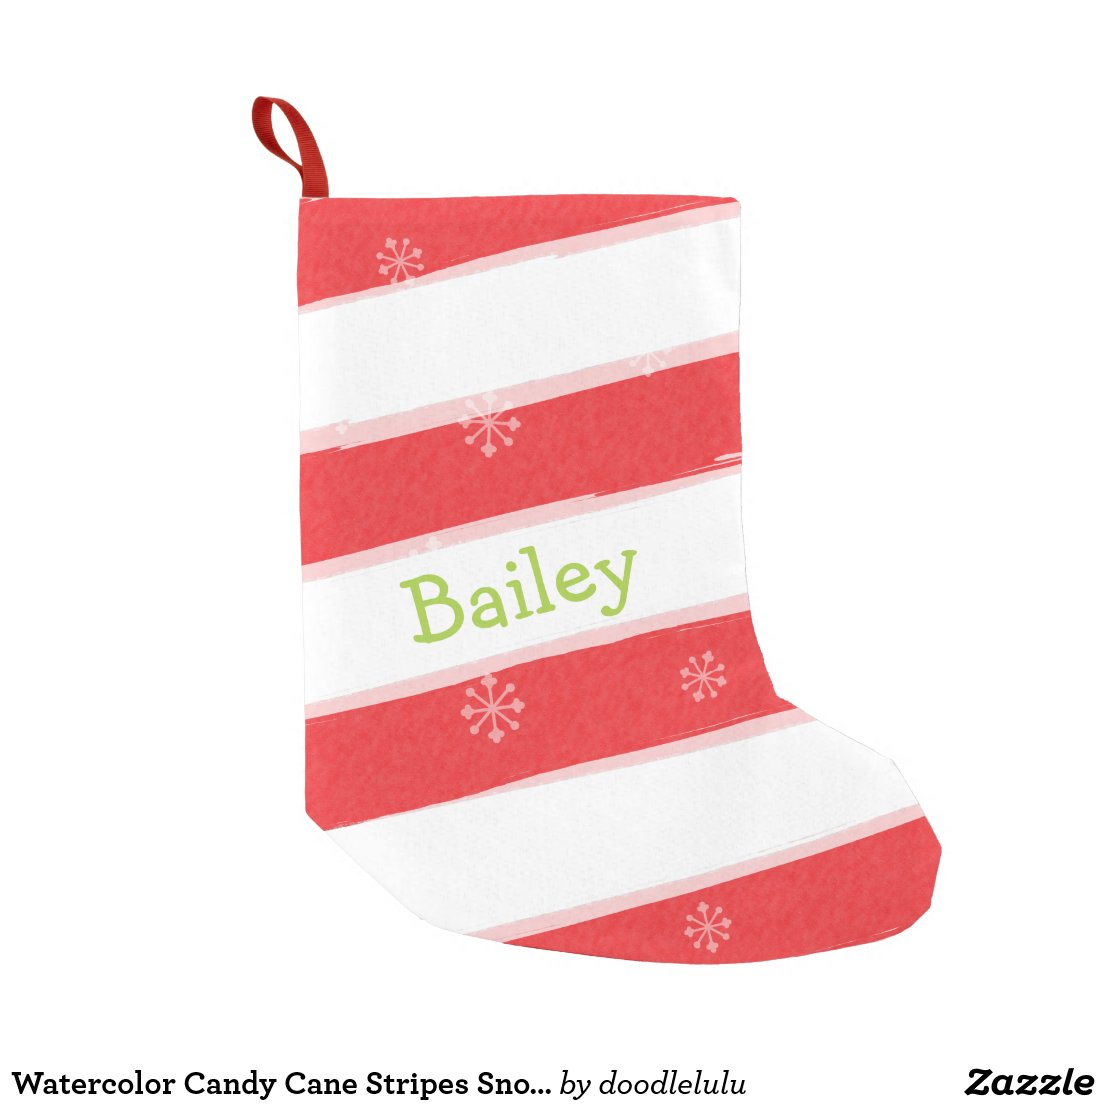 Watercolor Candy Cane Stripes Snowflakes Small Christmas Stocking